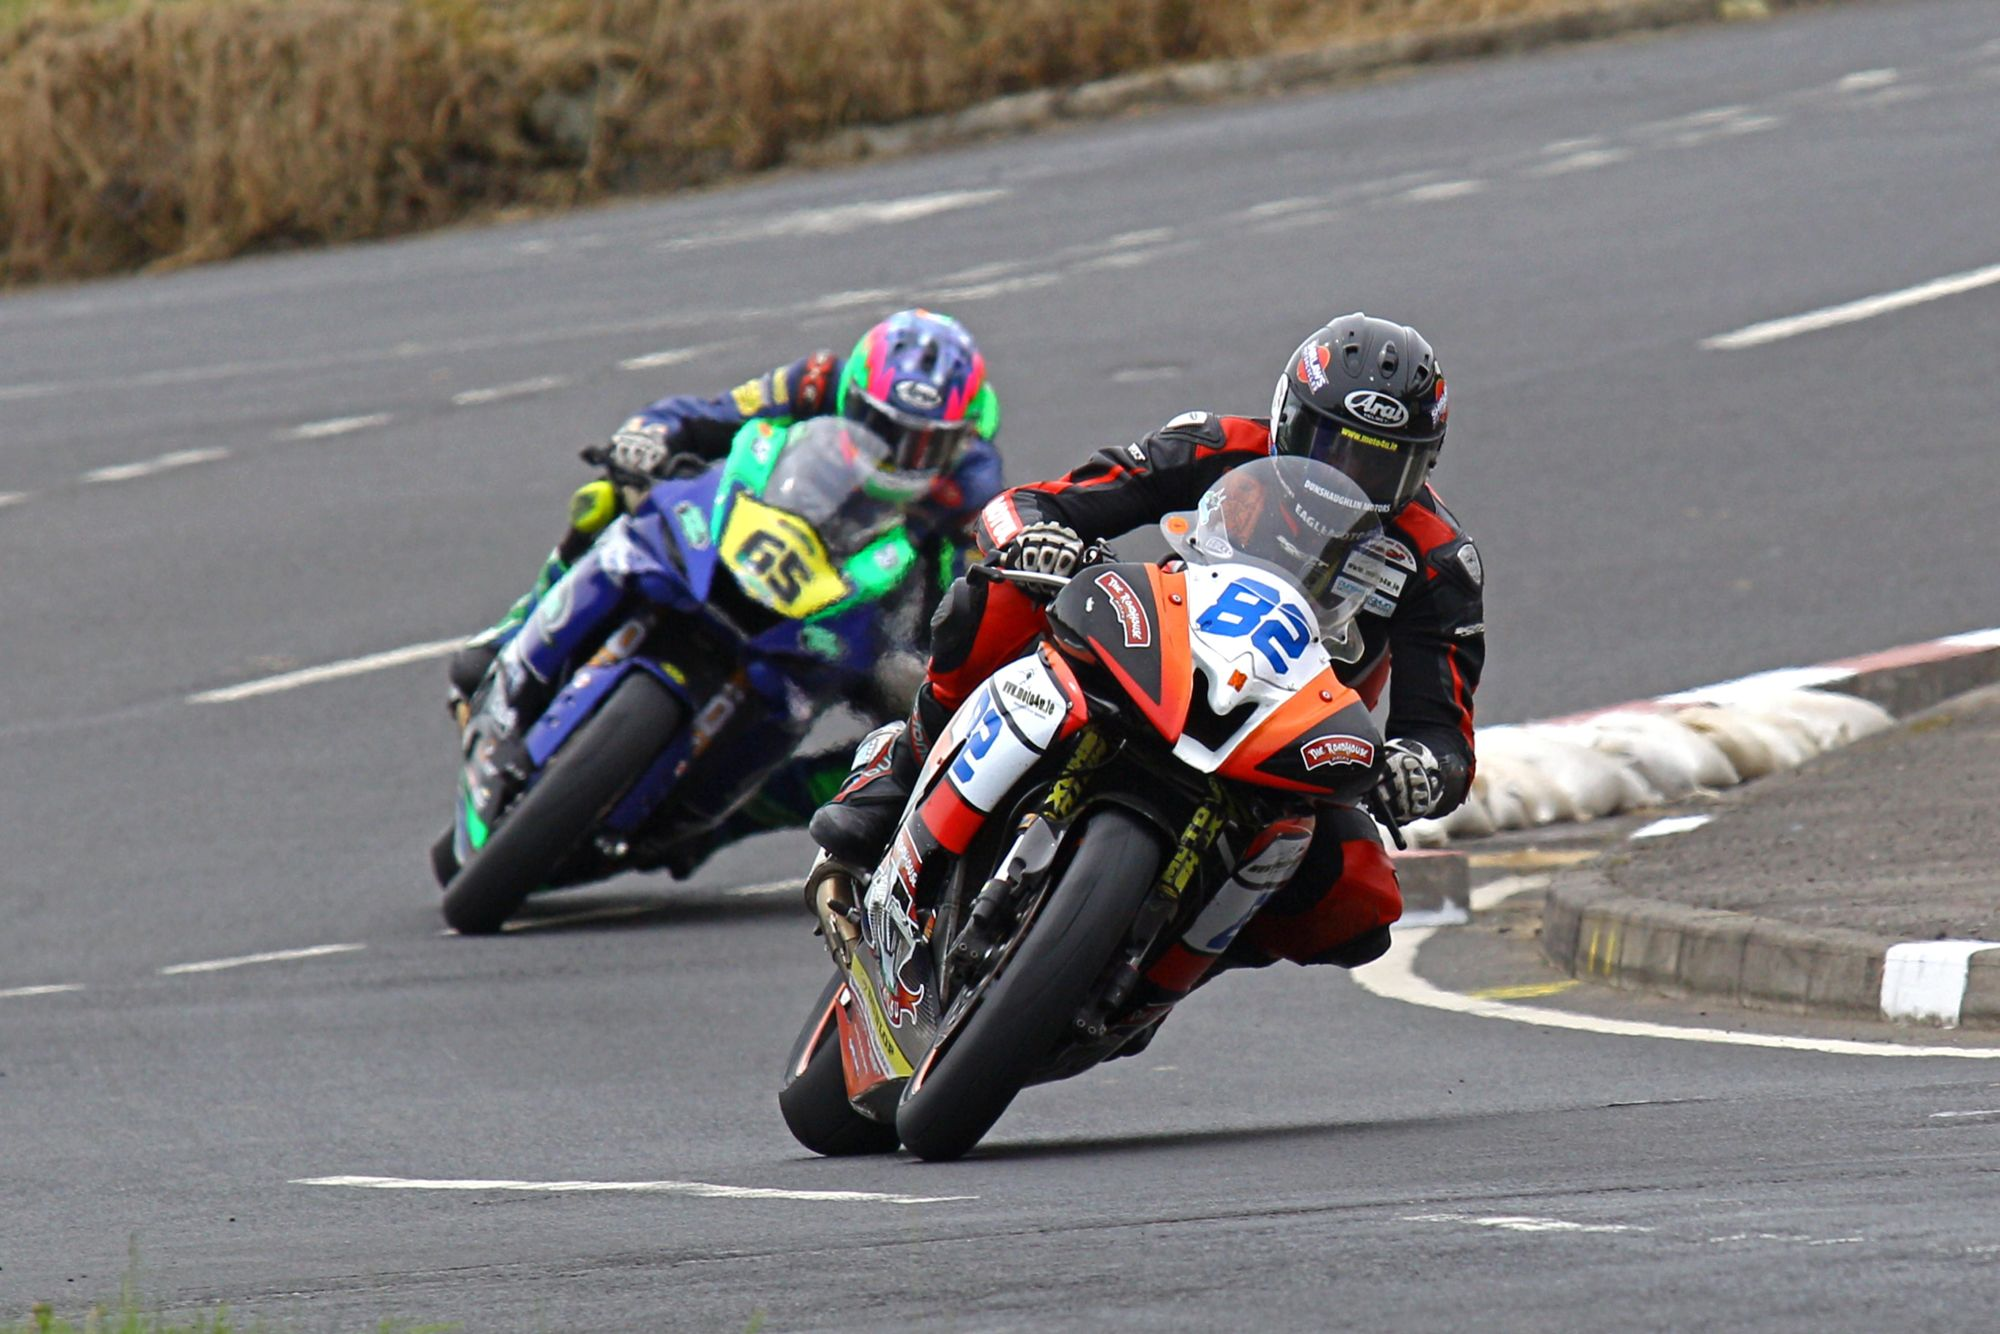 DEREK-SHEILS-FINISH-ON-THE-ROADHOUSE-MACAU-YAMAHA-AT-THE-ARMOY-ROAD-RACES